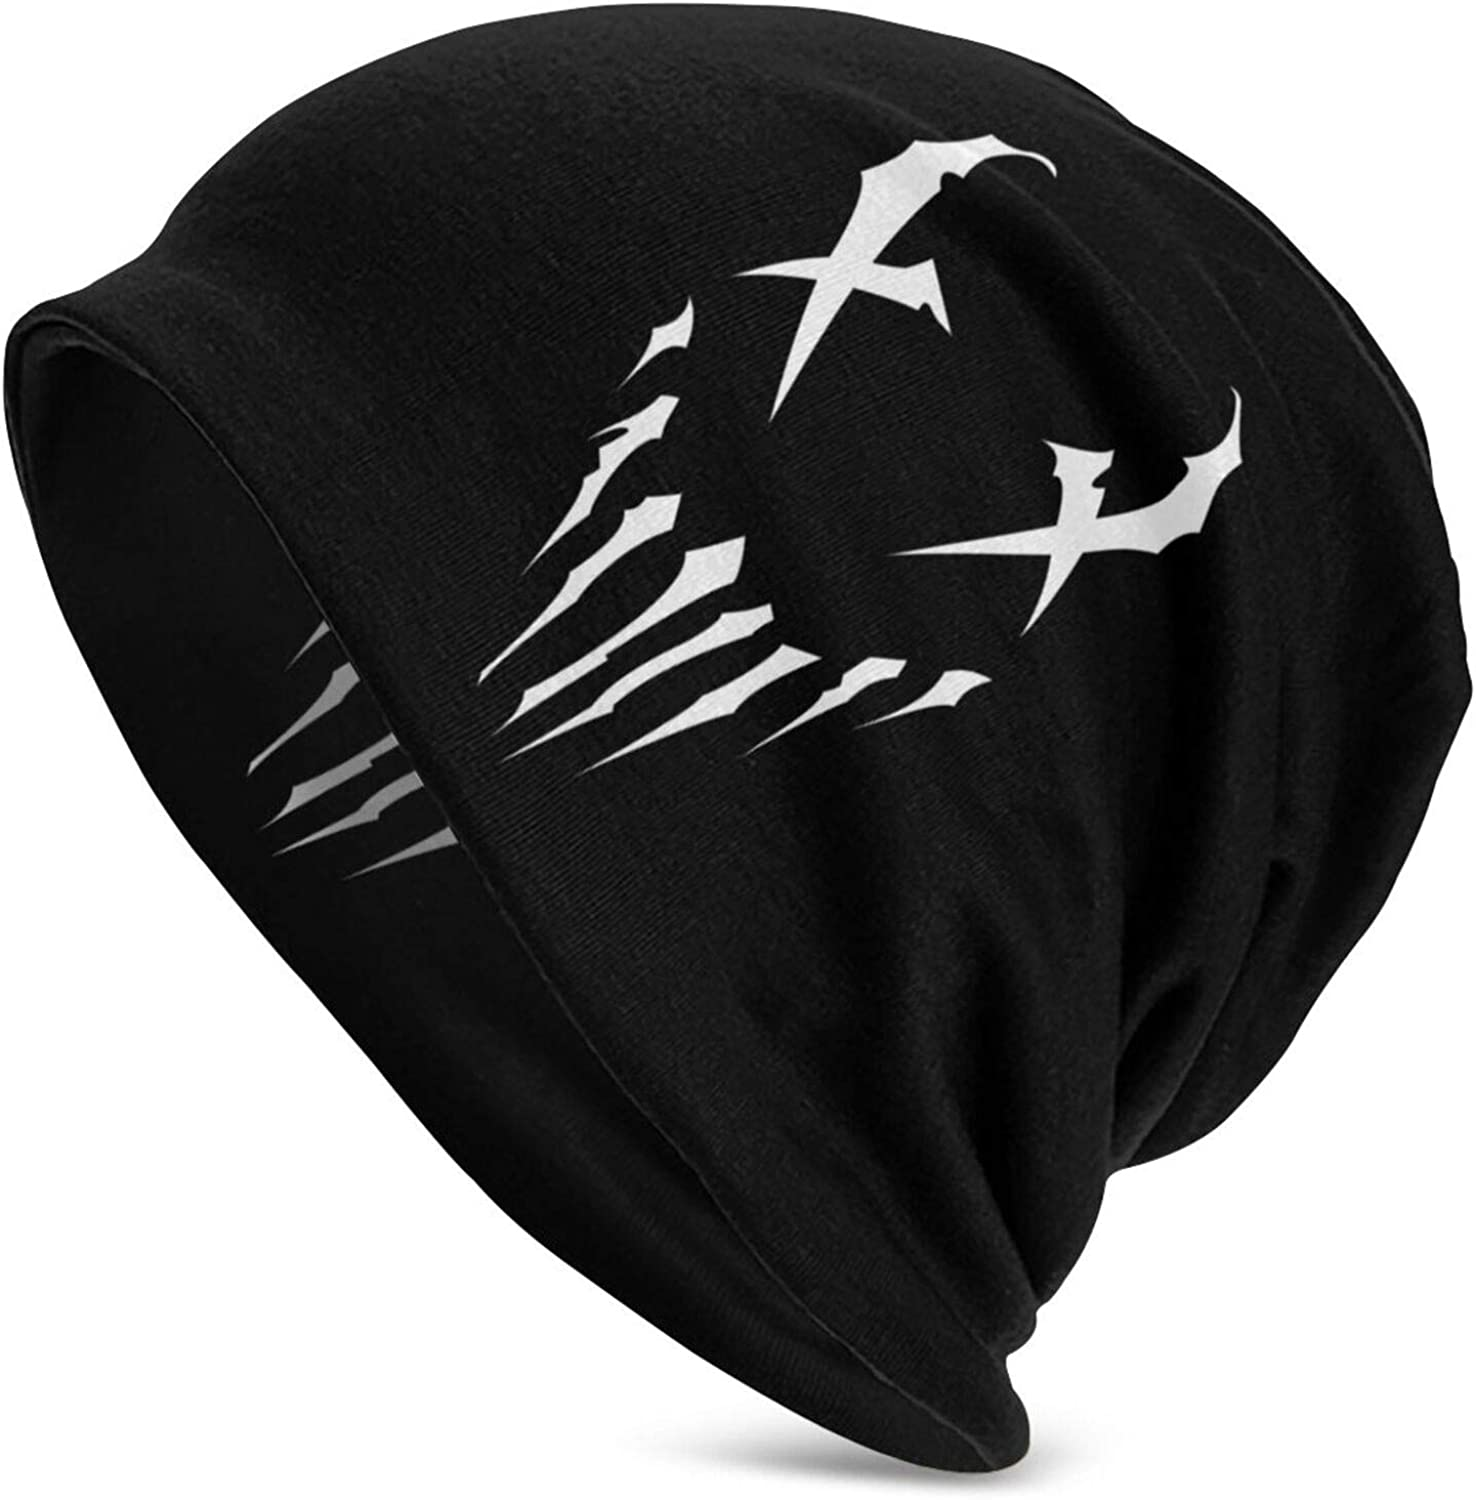 XMmanmz Adult Men Womens Knit Hat Unisex Warm Winter Beanie Mushroomhead Logo Hats